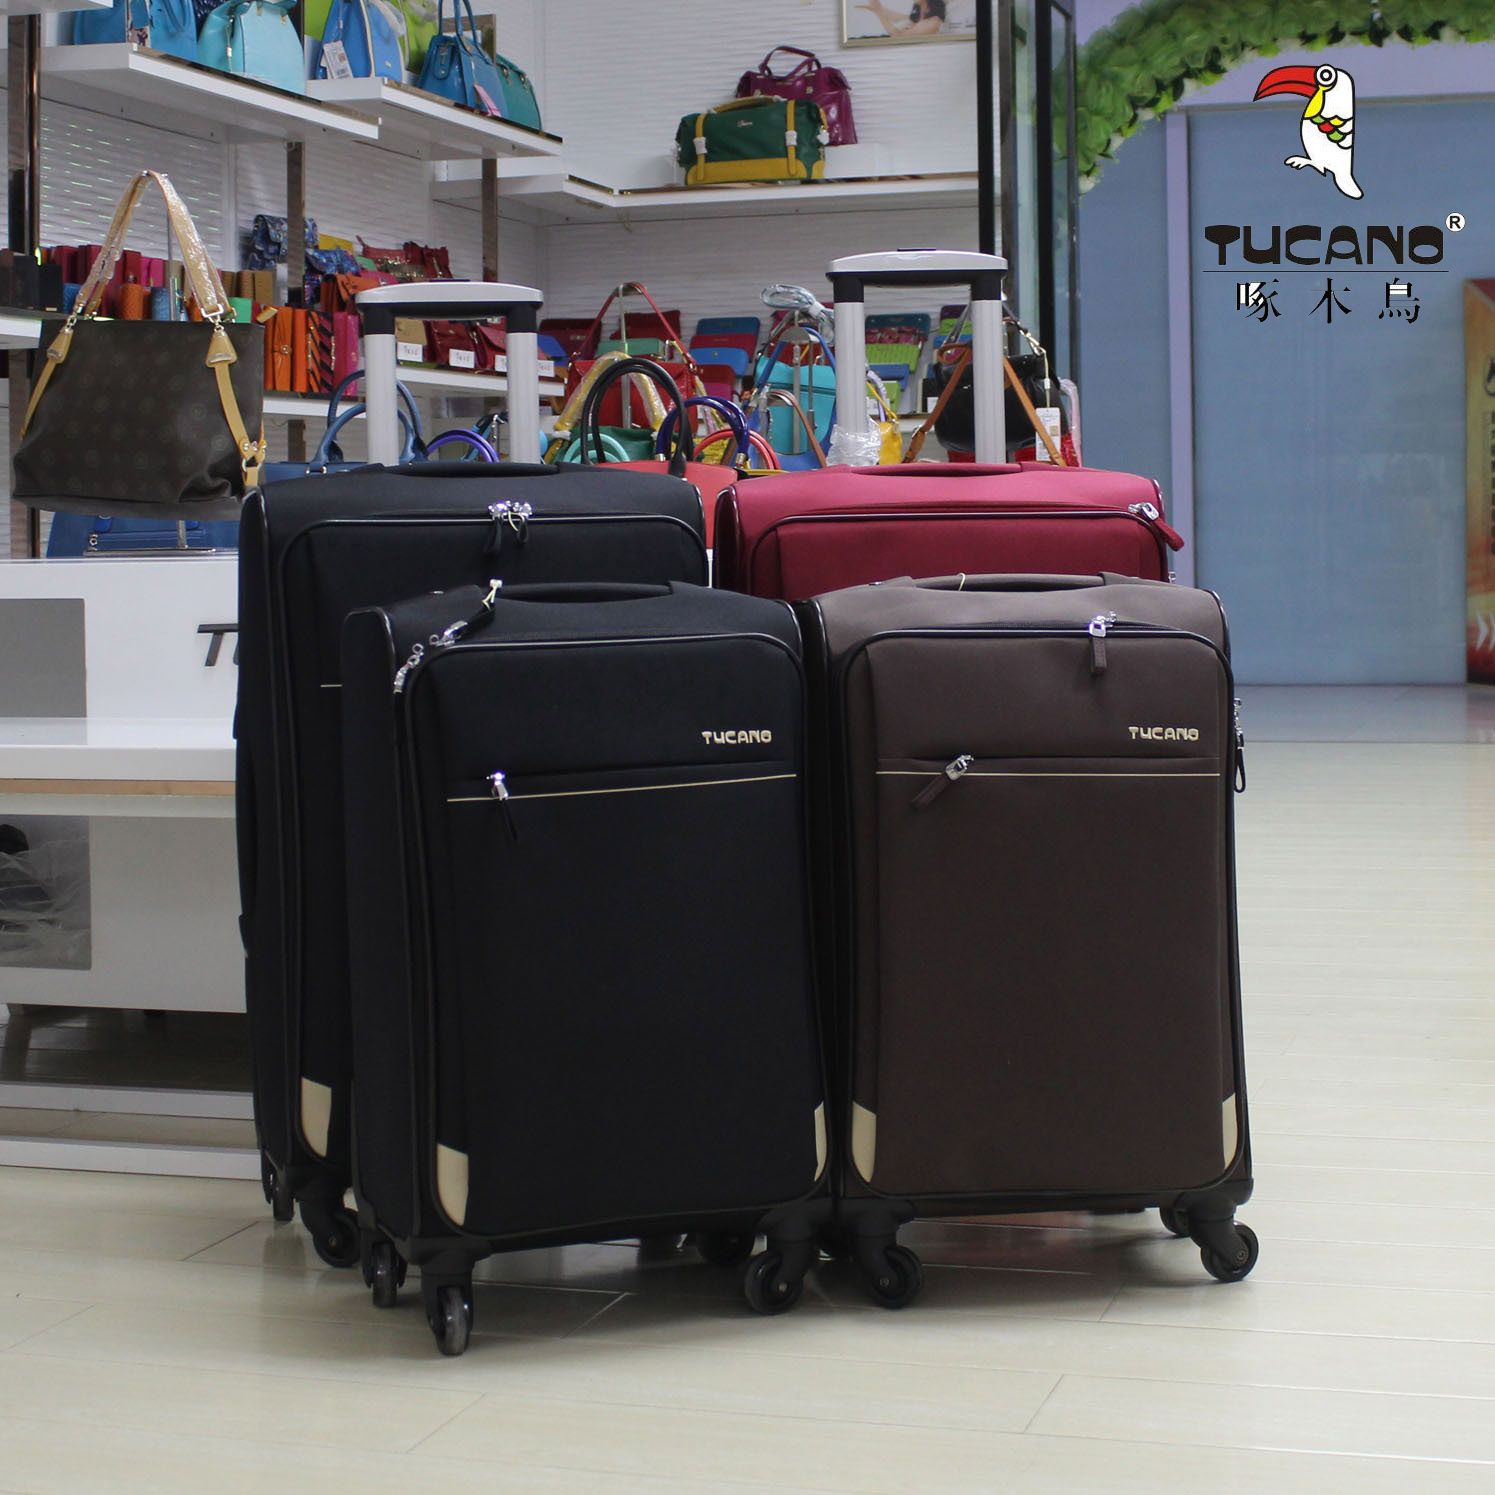 Double 11 clearance woodpecker Oxford cloth Trolley Case universal wheel business suitcase 24